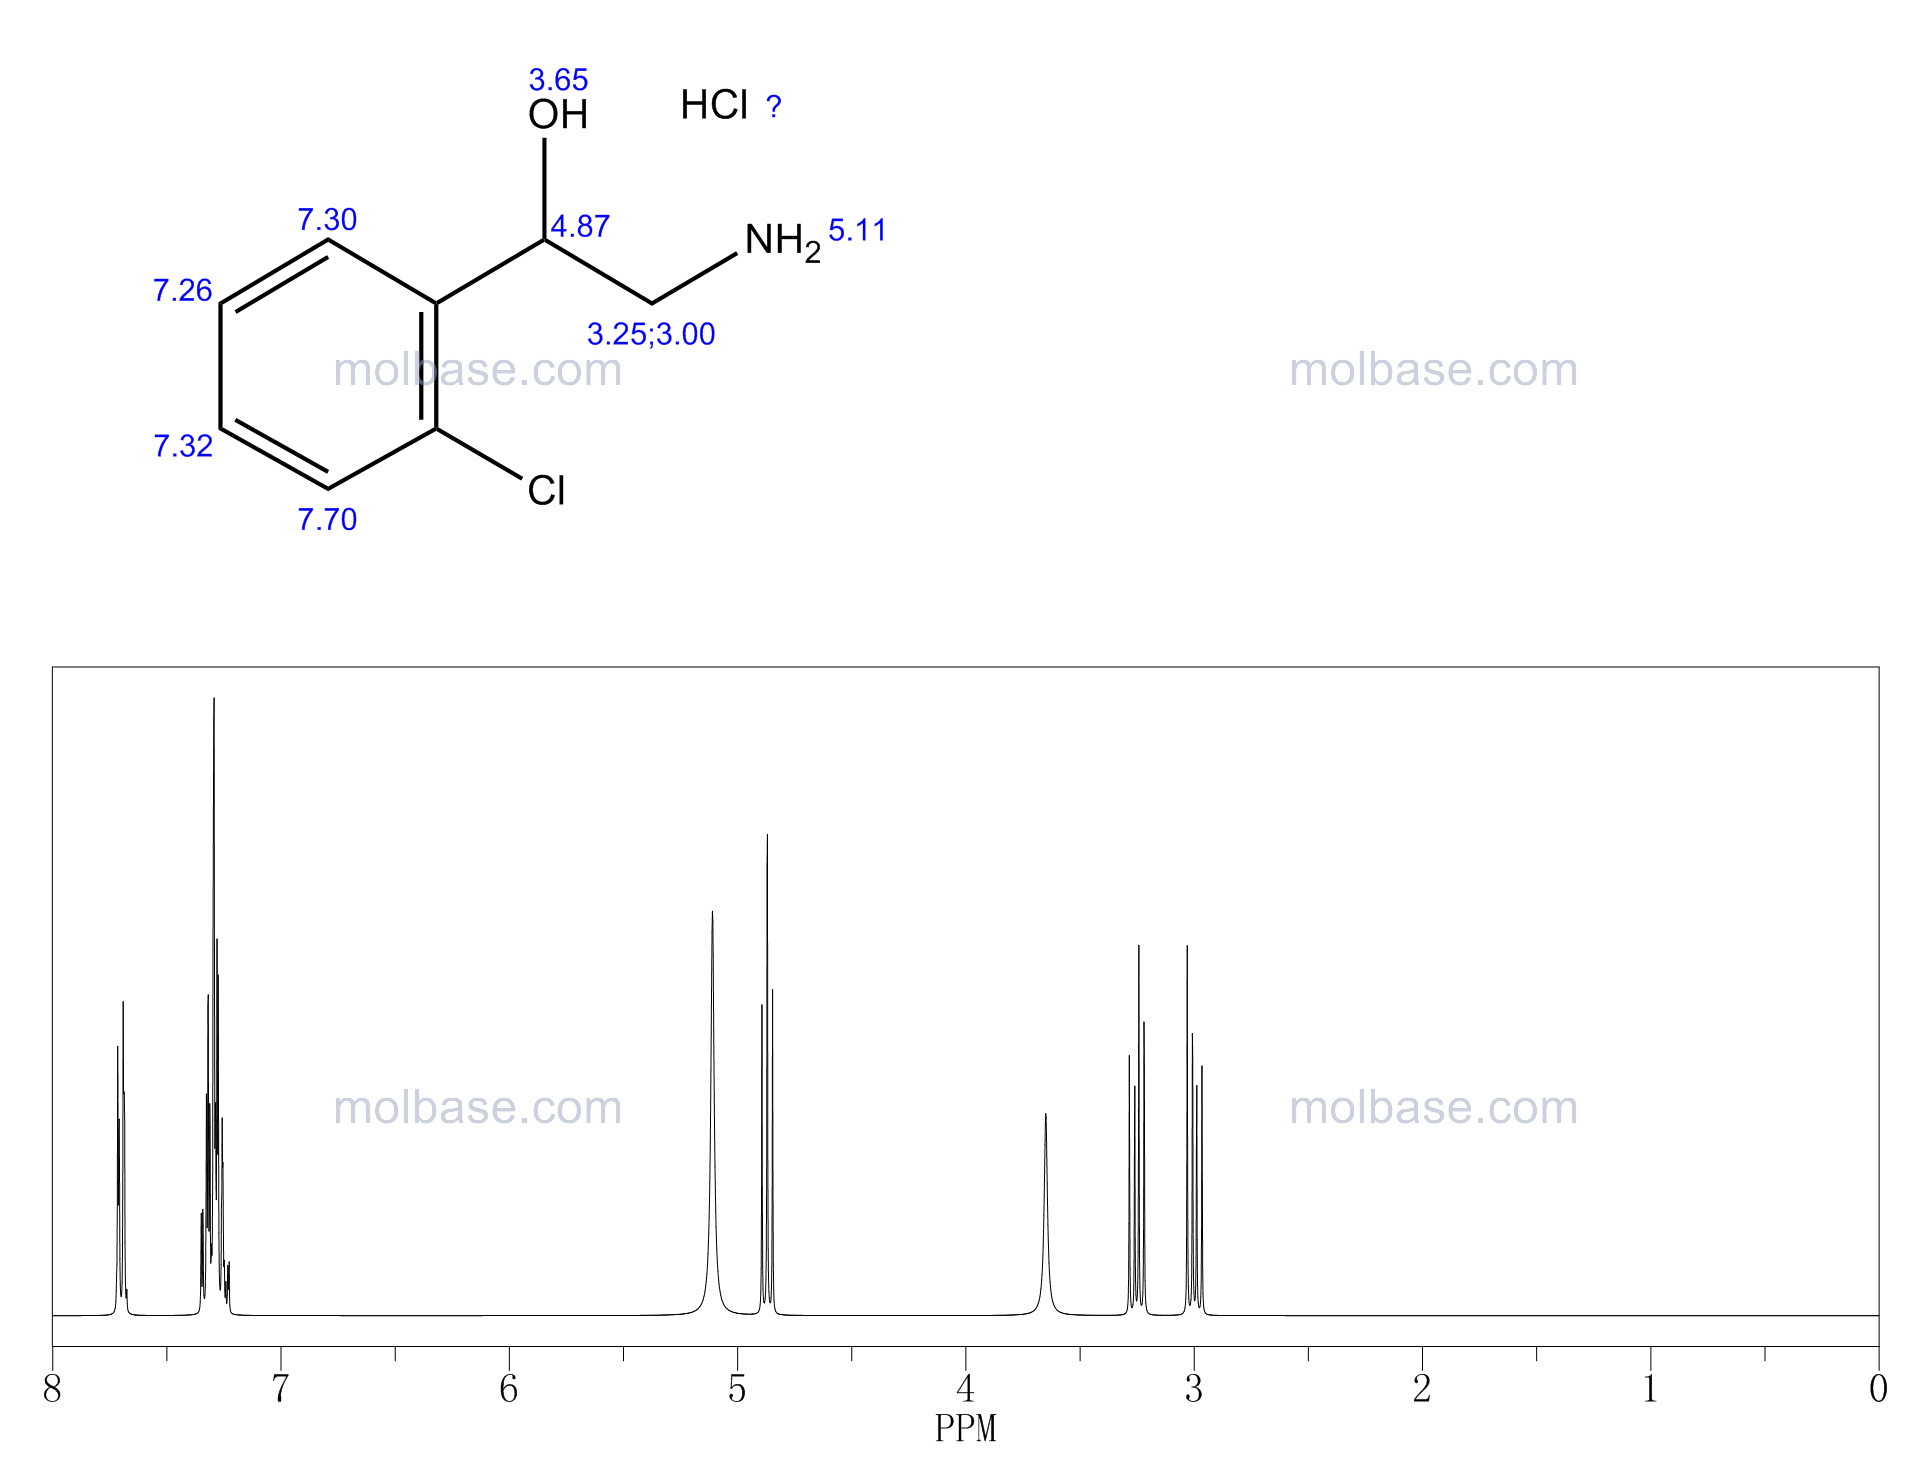 2-amino-1-(2-chlorophenyl)ethanol,hydrochloride NMR spectra analysis, Chemical CAS NO. 40570-86-3 NMR spectral analysis, 2-amino-1-(2-chlorophenyl)ethanol,hydrochloride C-NMR spectrum